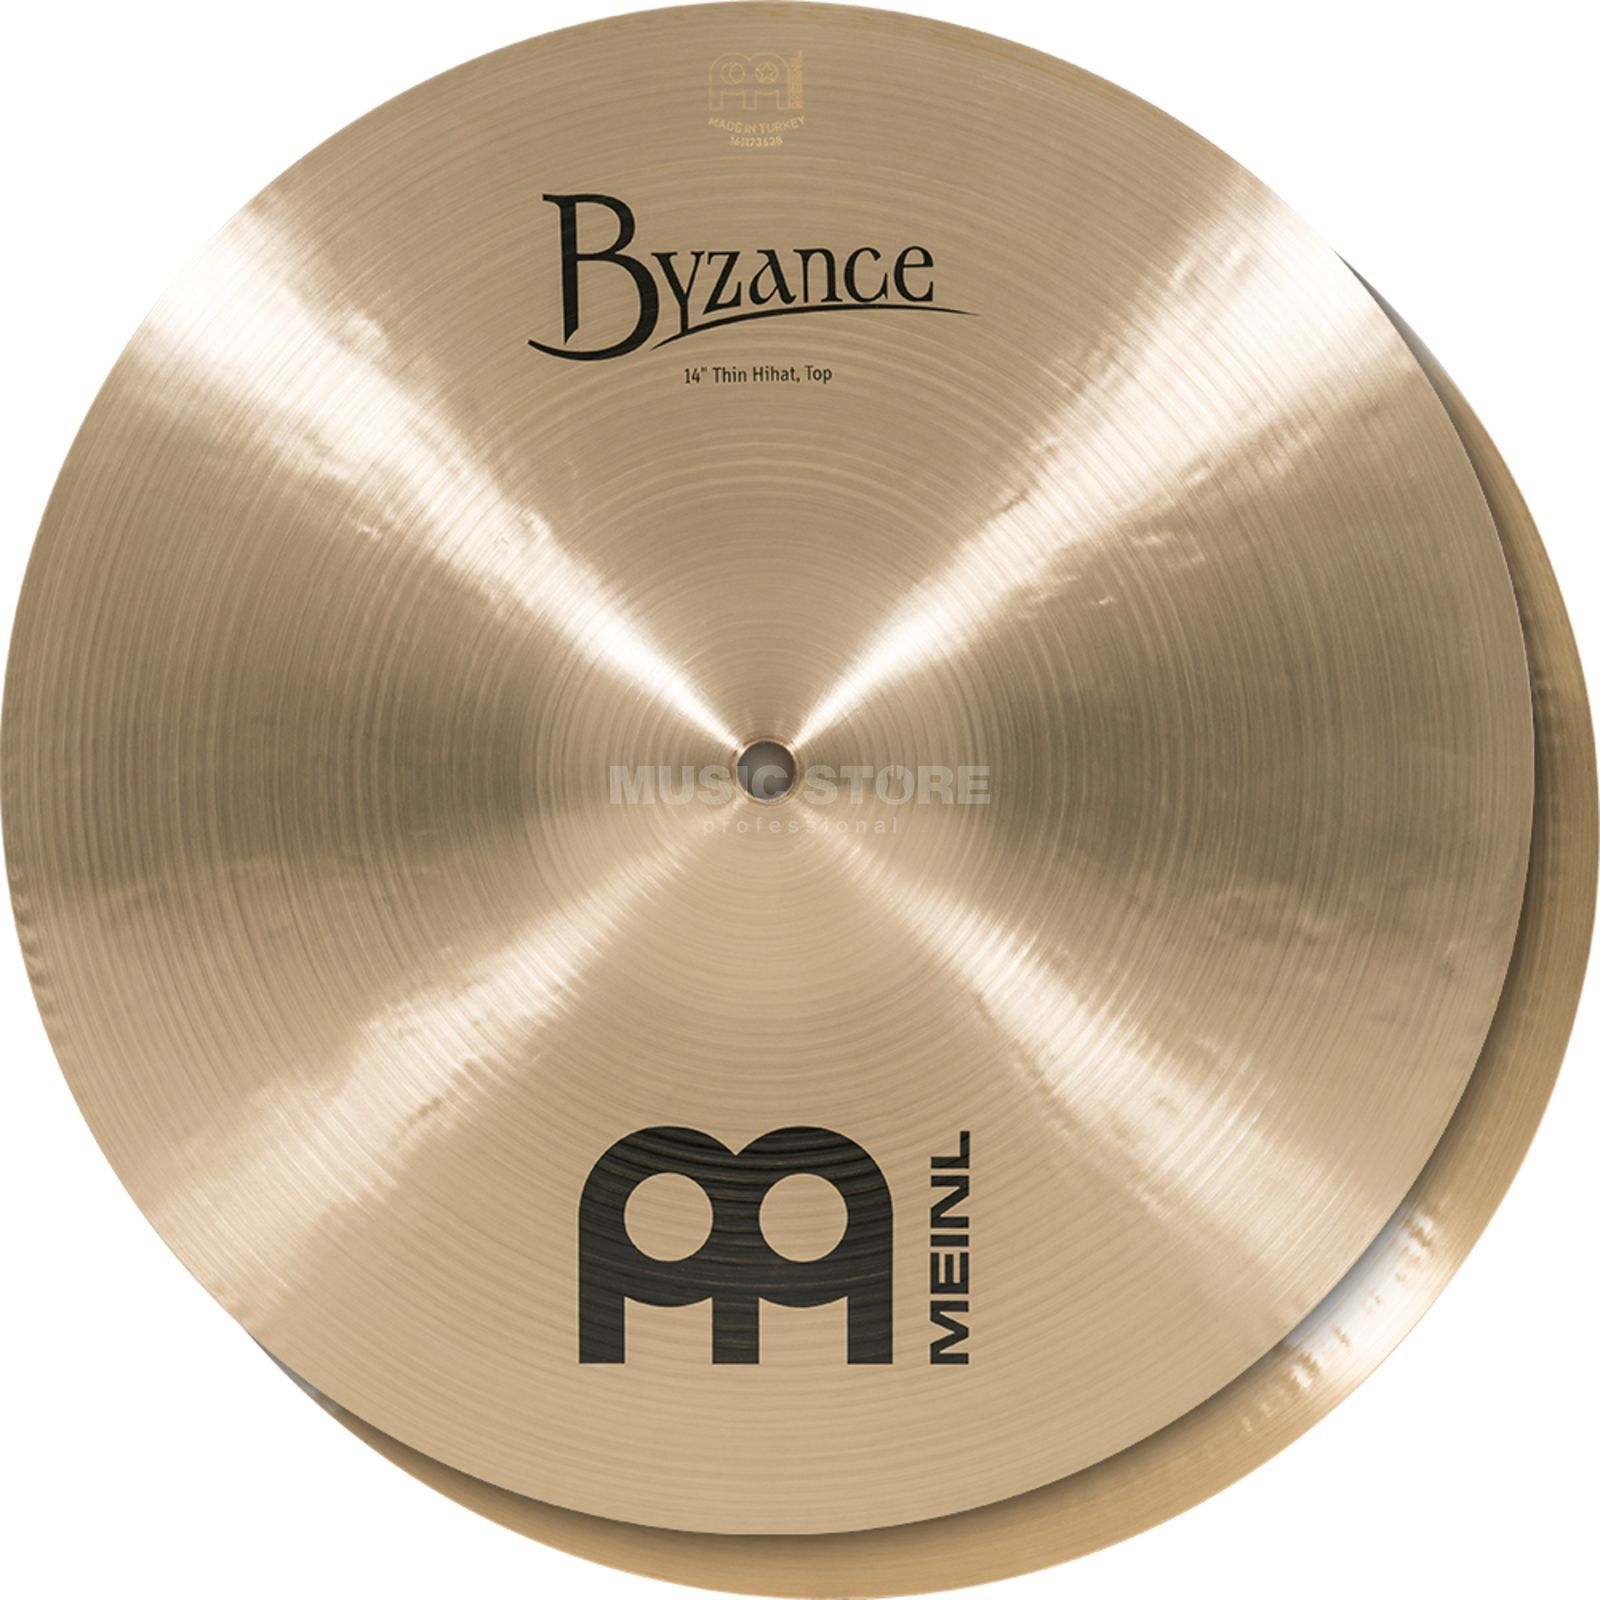 "Meinl Byzance Thin HiHat 14"", B14TH, Traditional Finish Produktbillede"